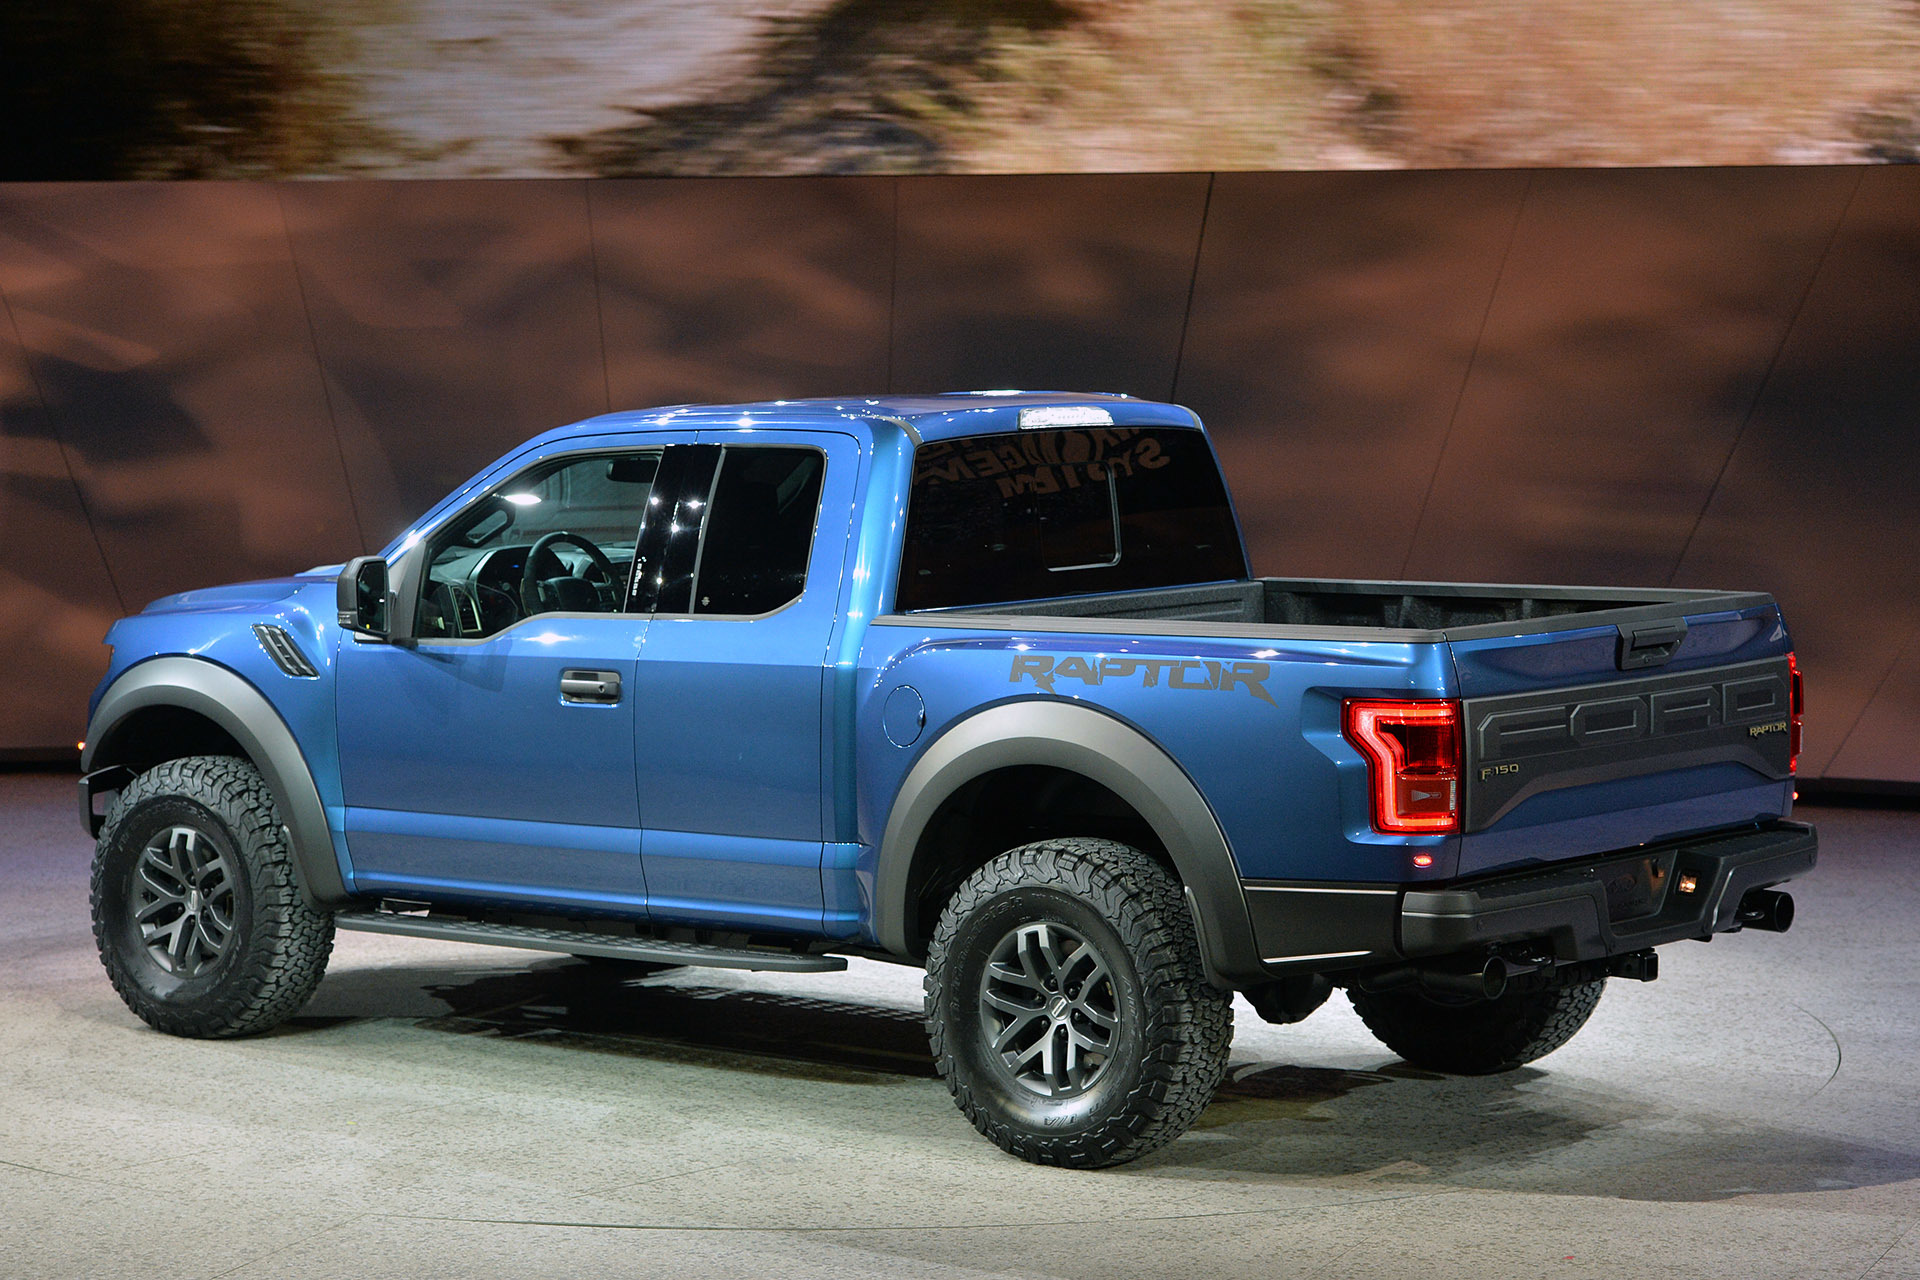 Ford F150 Transmission >> 2017 Ford Raptor revealed at the Detroit Auto Show - PakWheels Blog